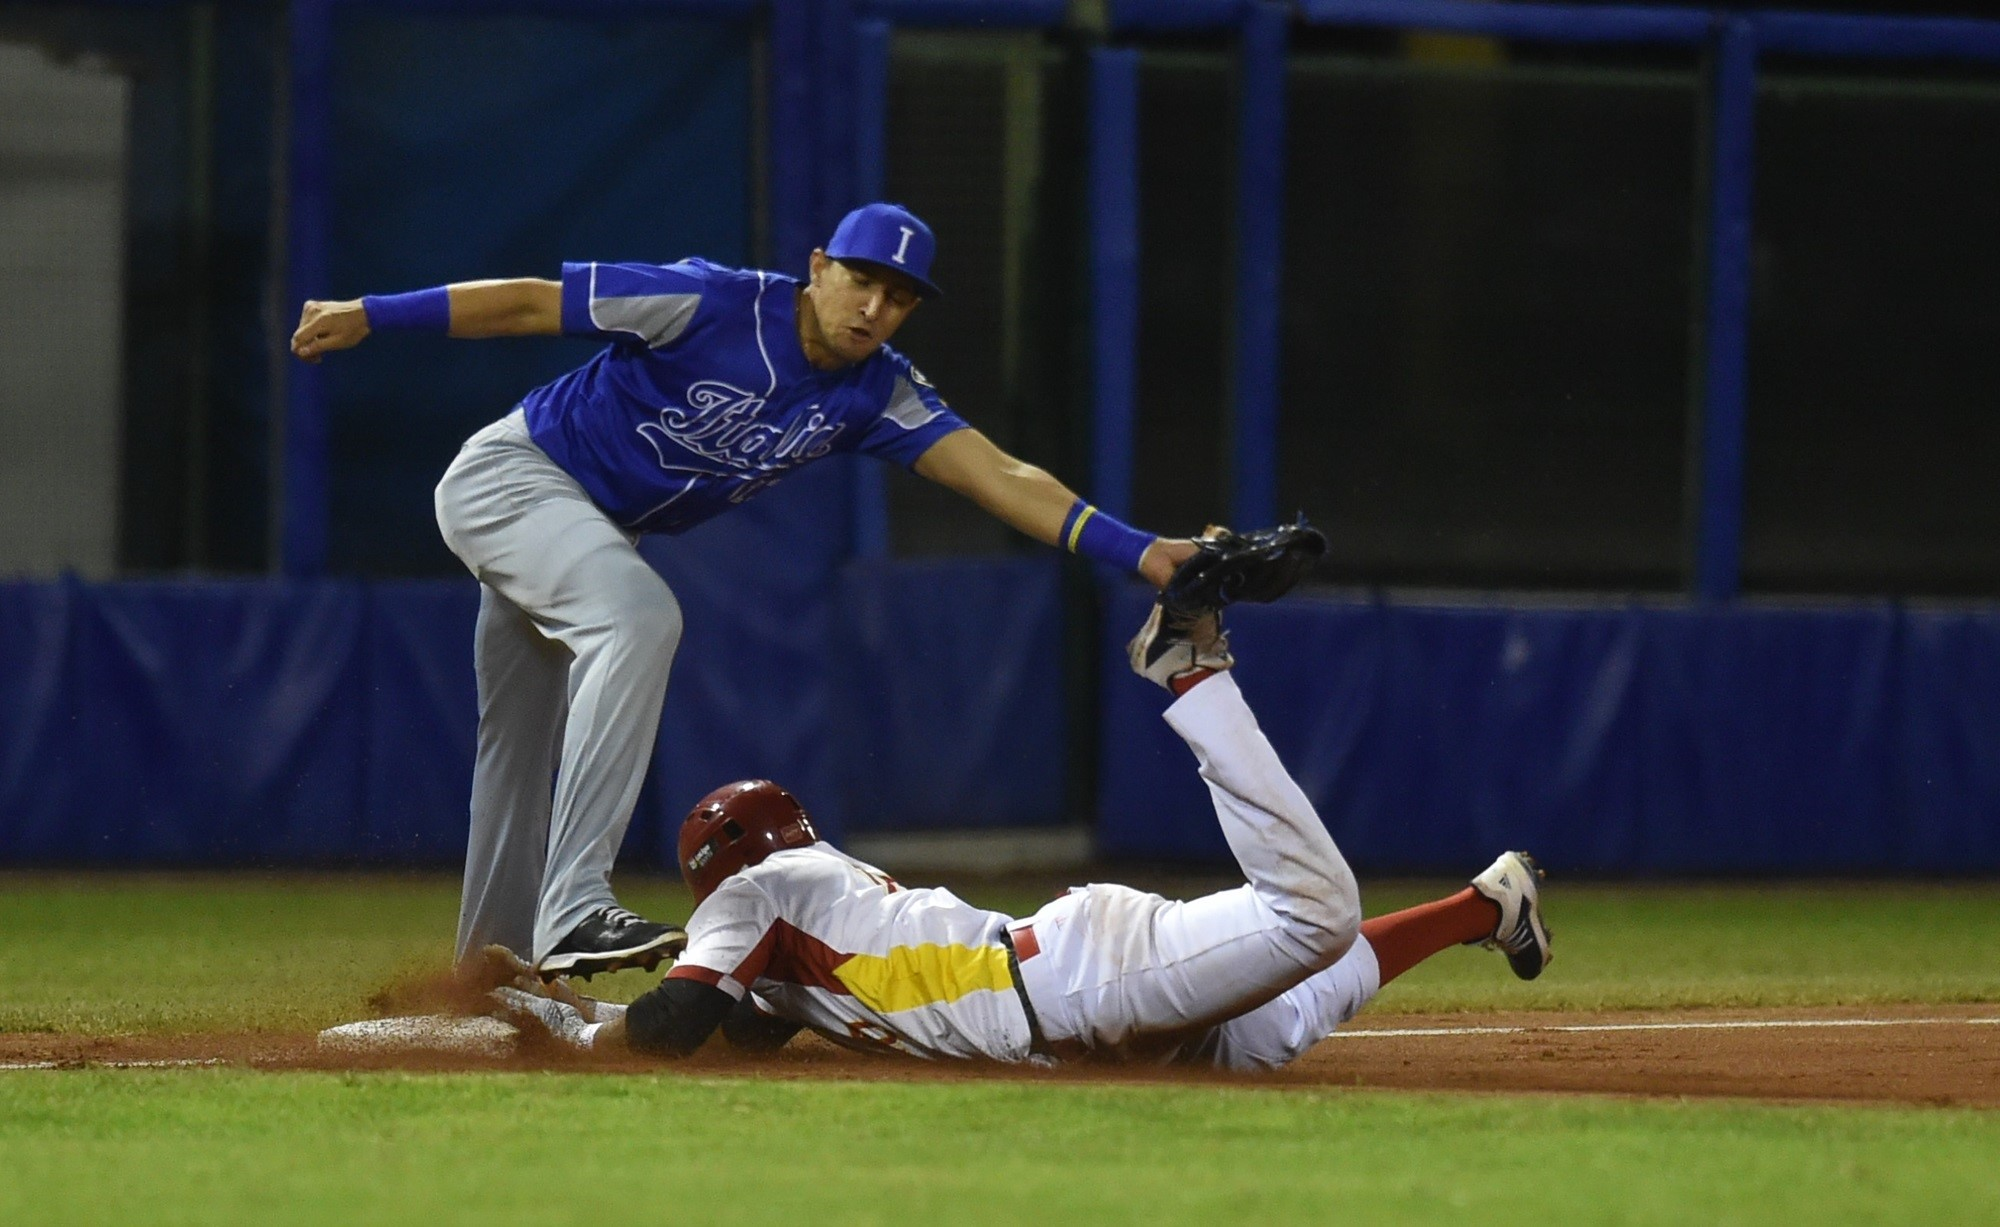 Spain put pressure through the running game. Monzon gets to third and avoids a tag by Epifano